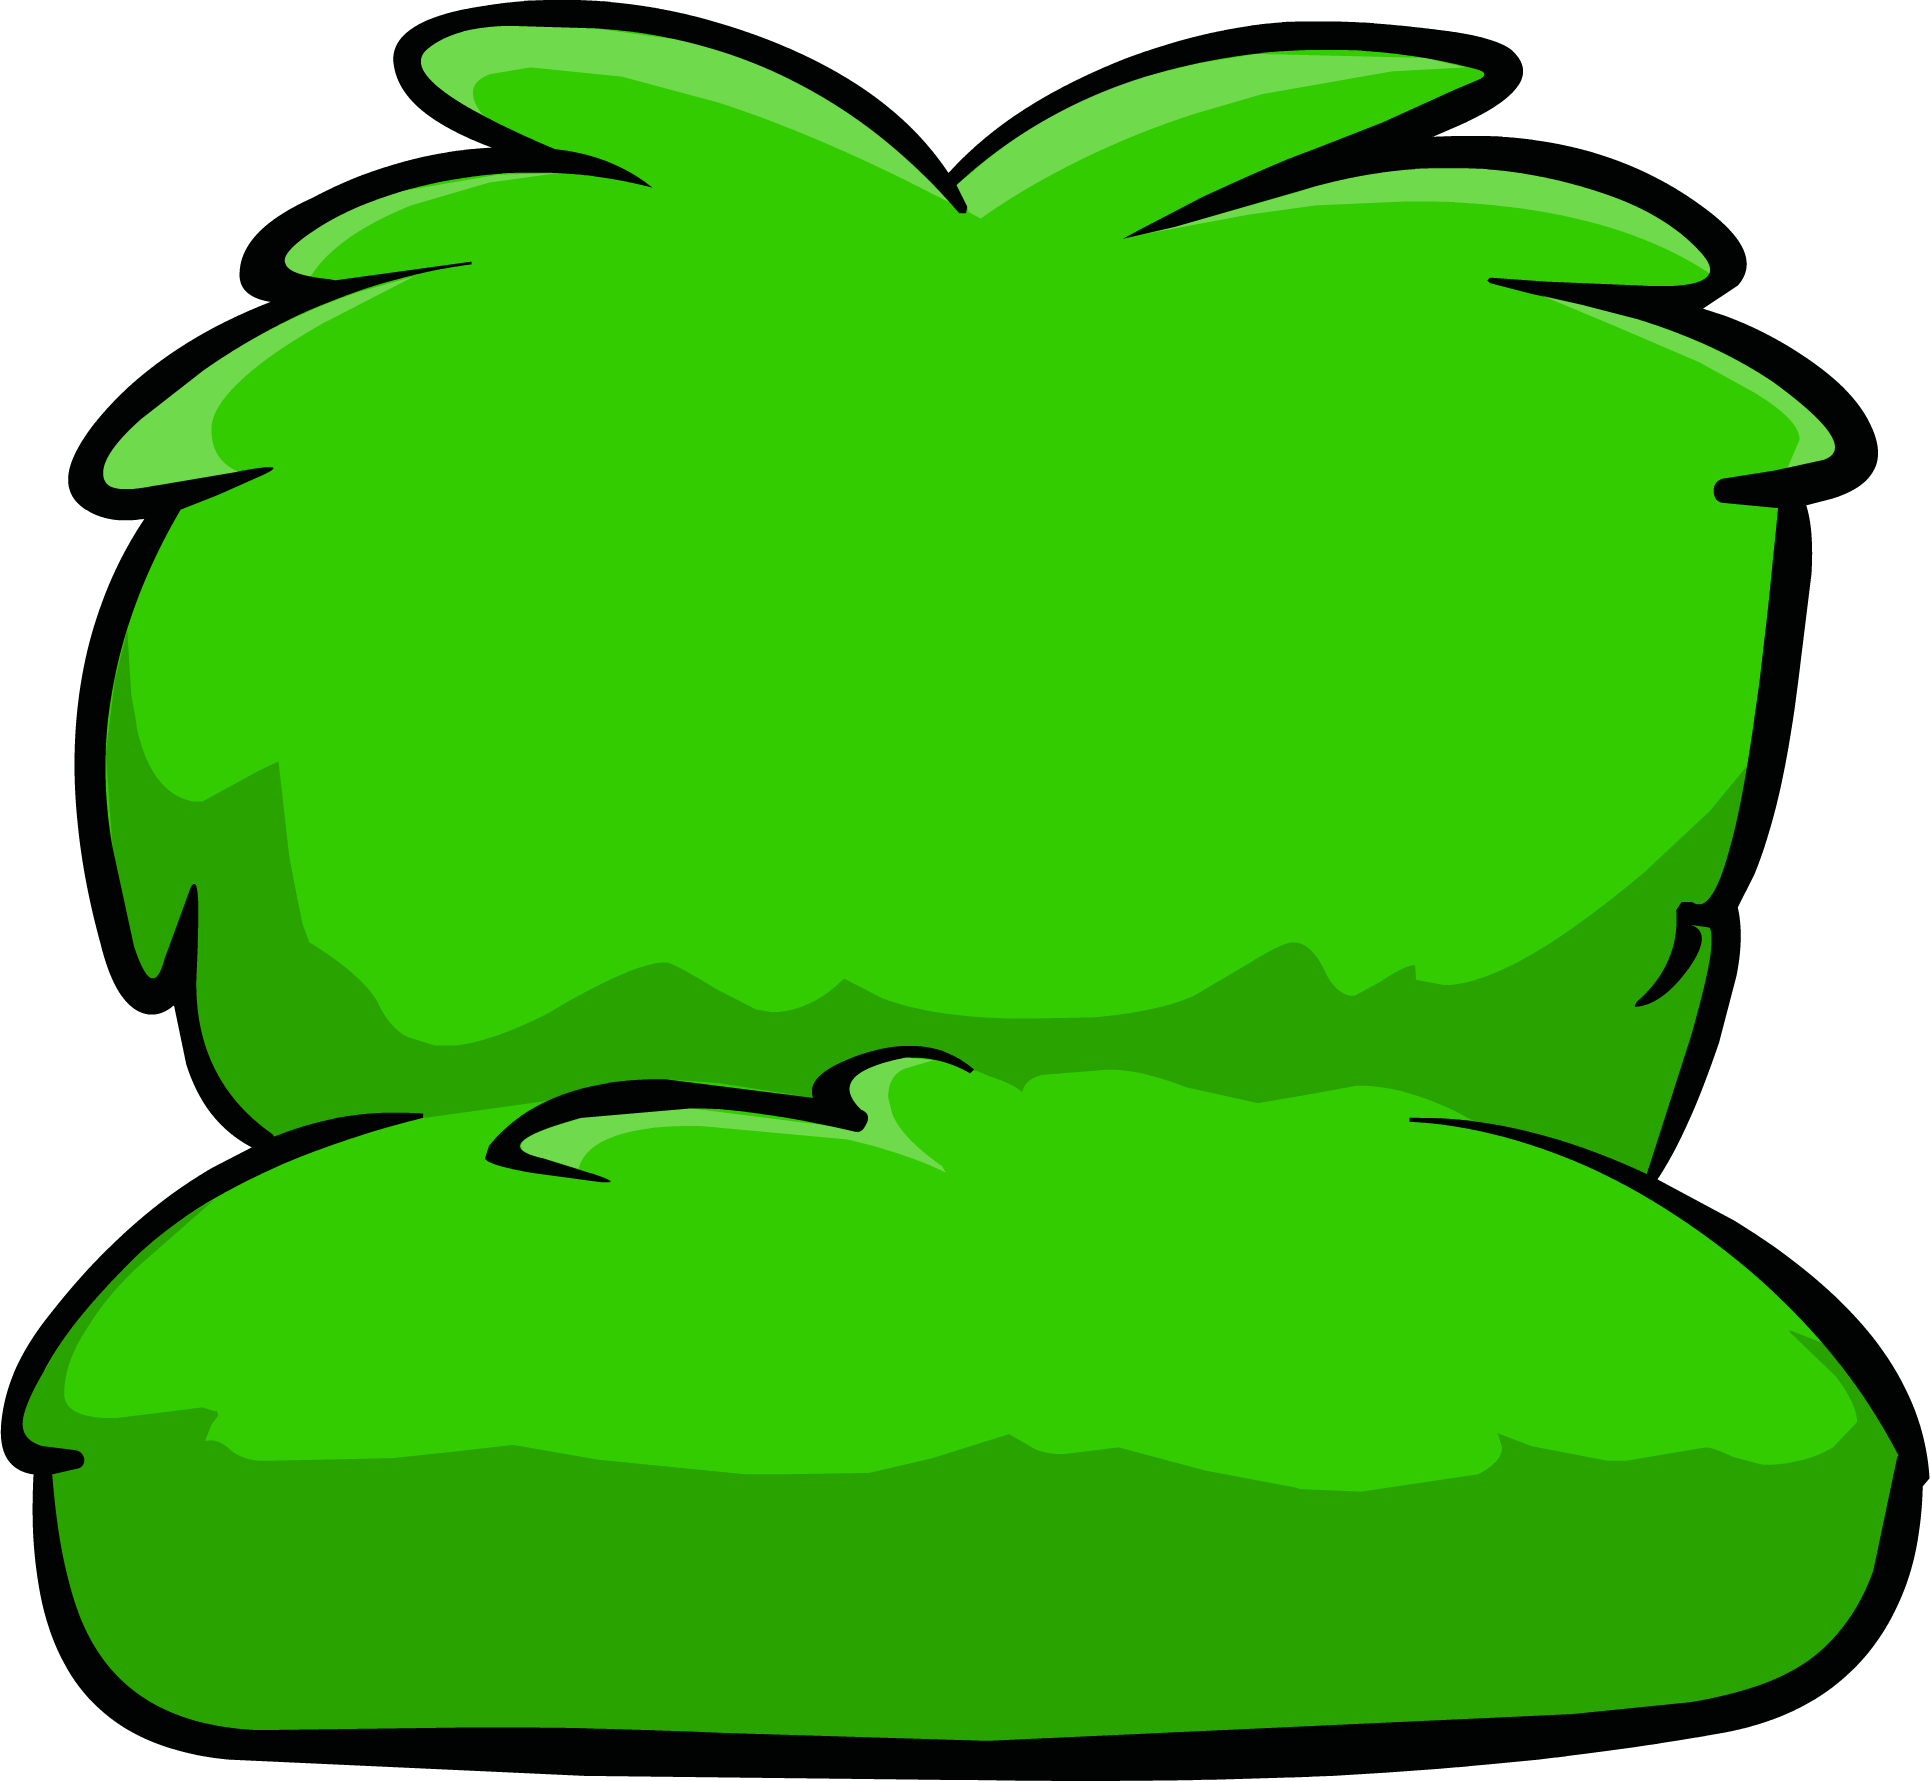 Fuzzy club penguin wiki. Couch clipart green couch